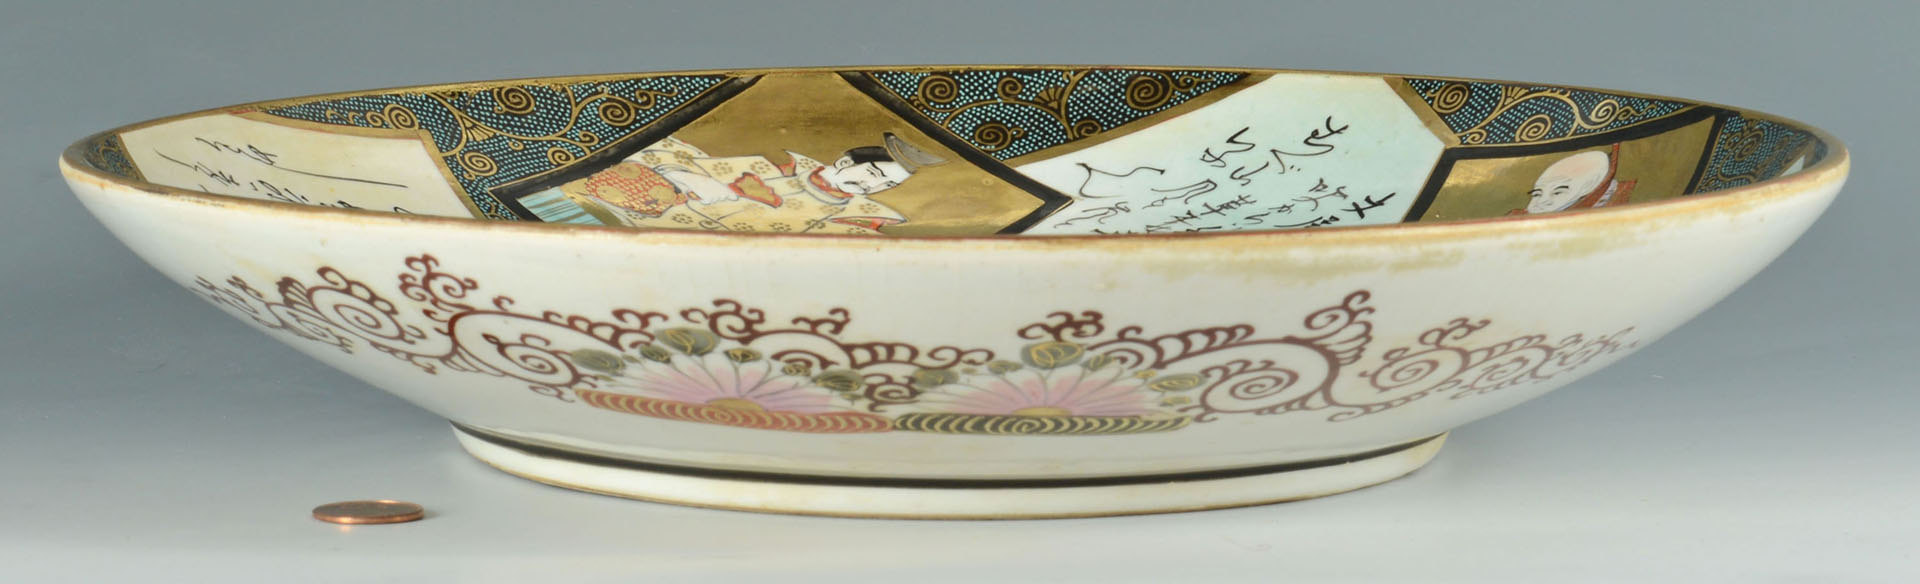 Lot 3088295: Signed Japanese Porcelain Kutani Charger